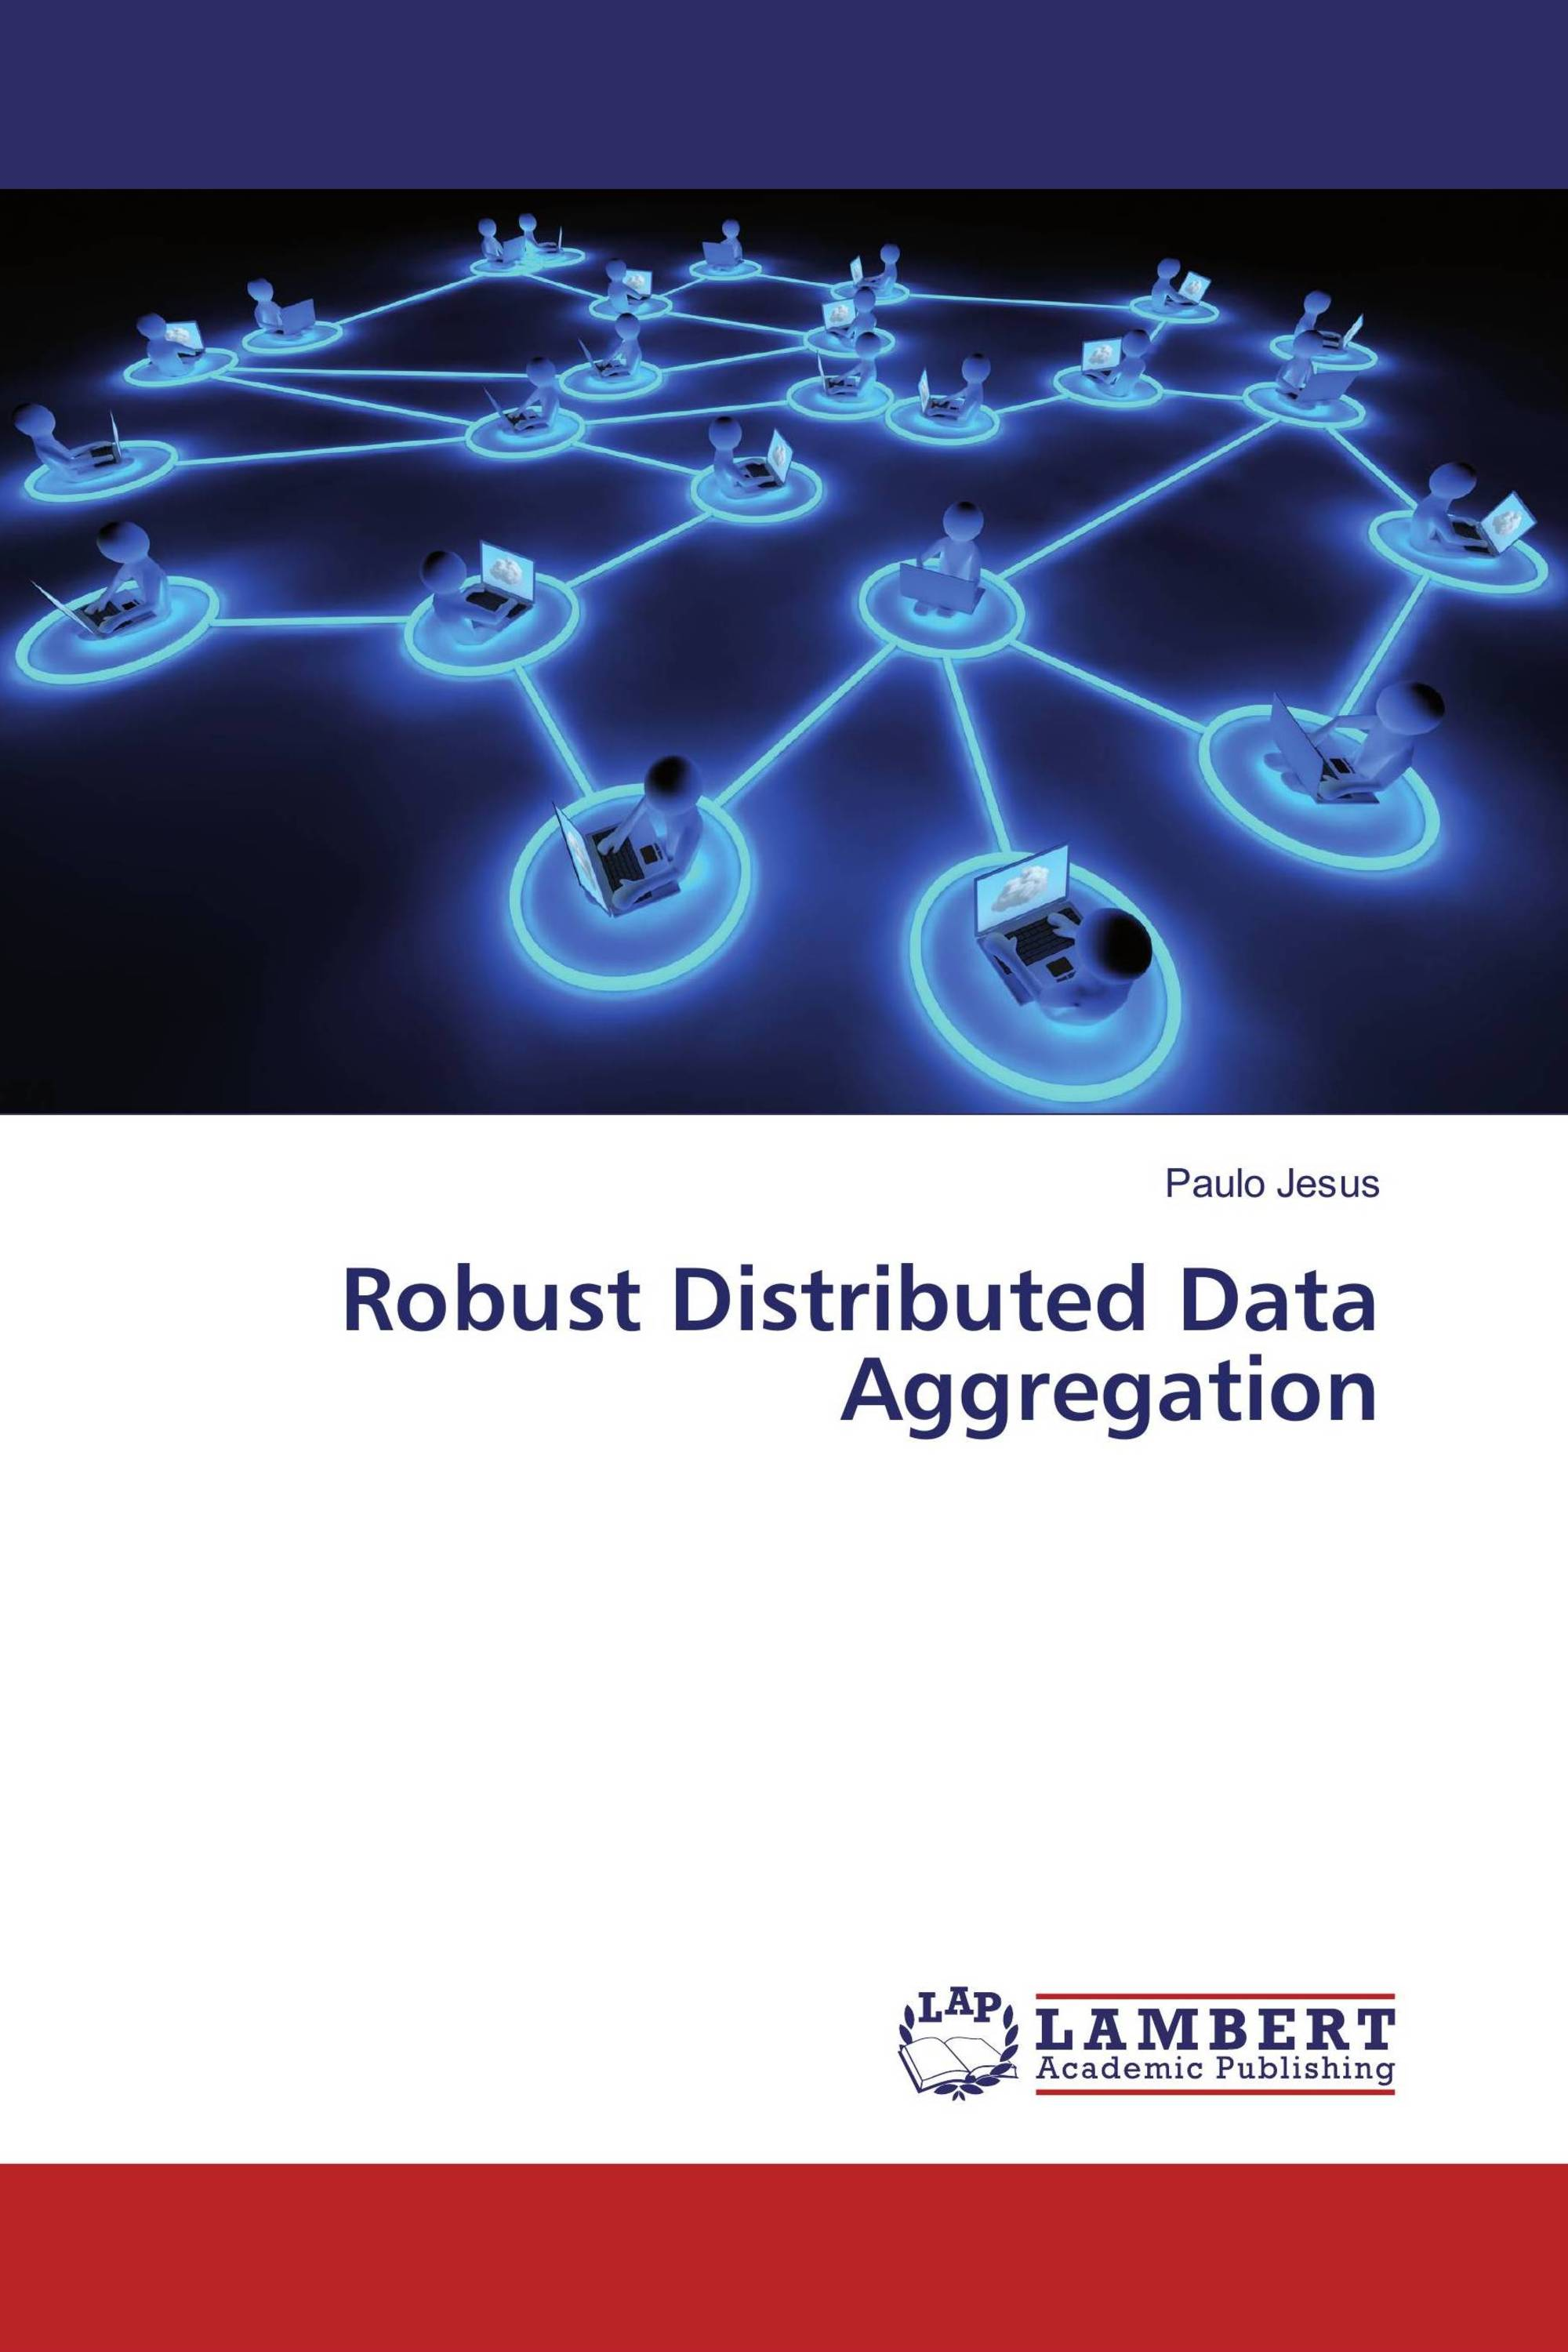 Robust Distributed Data Aggregation